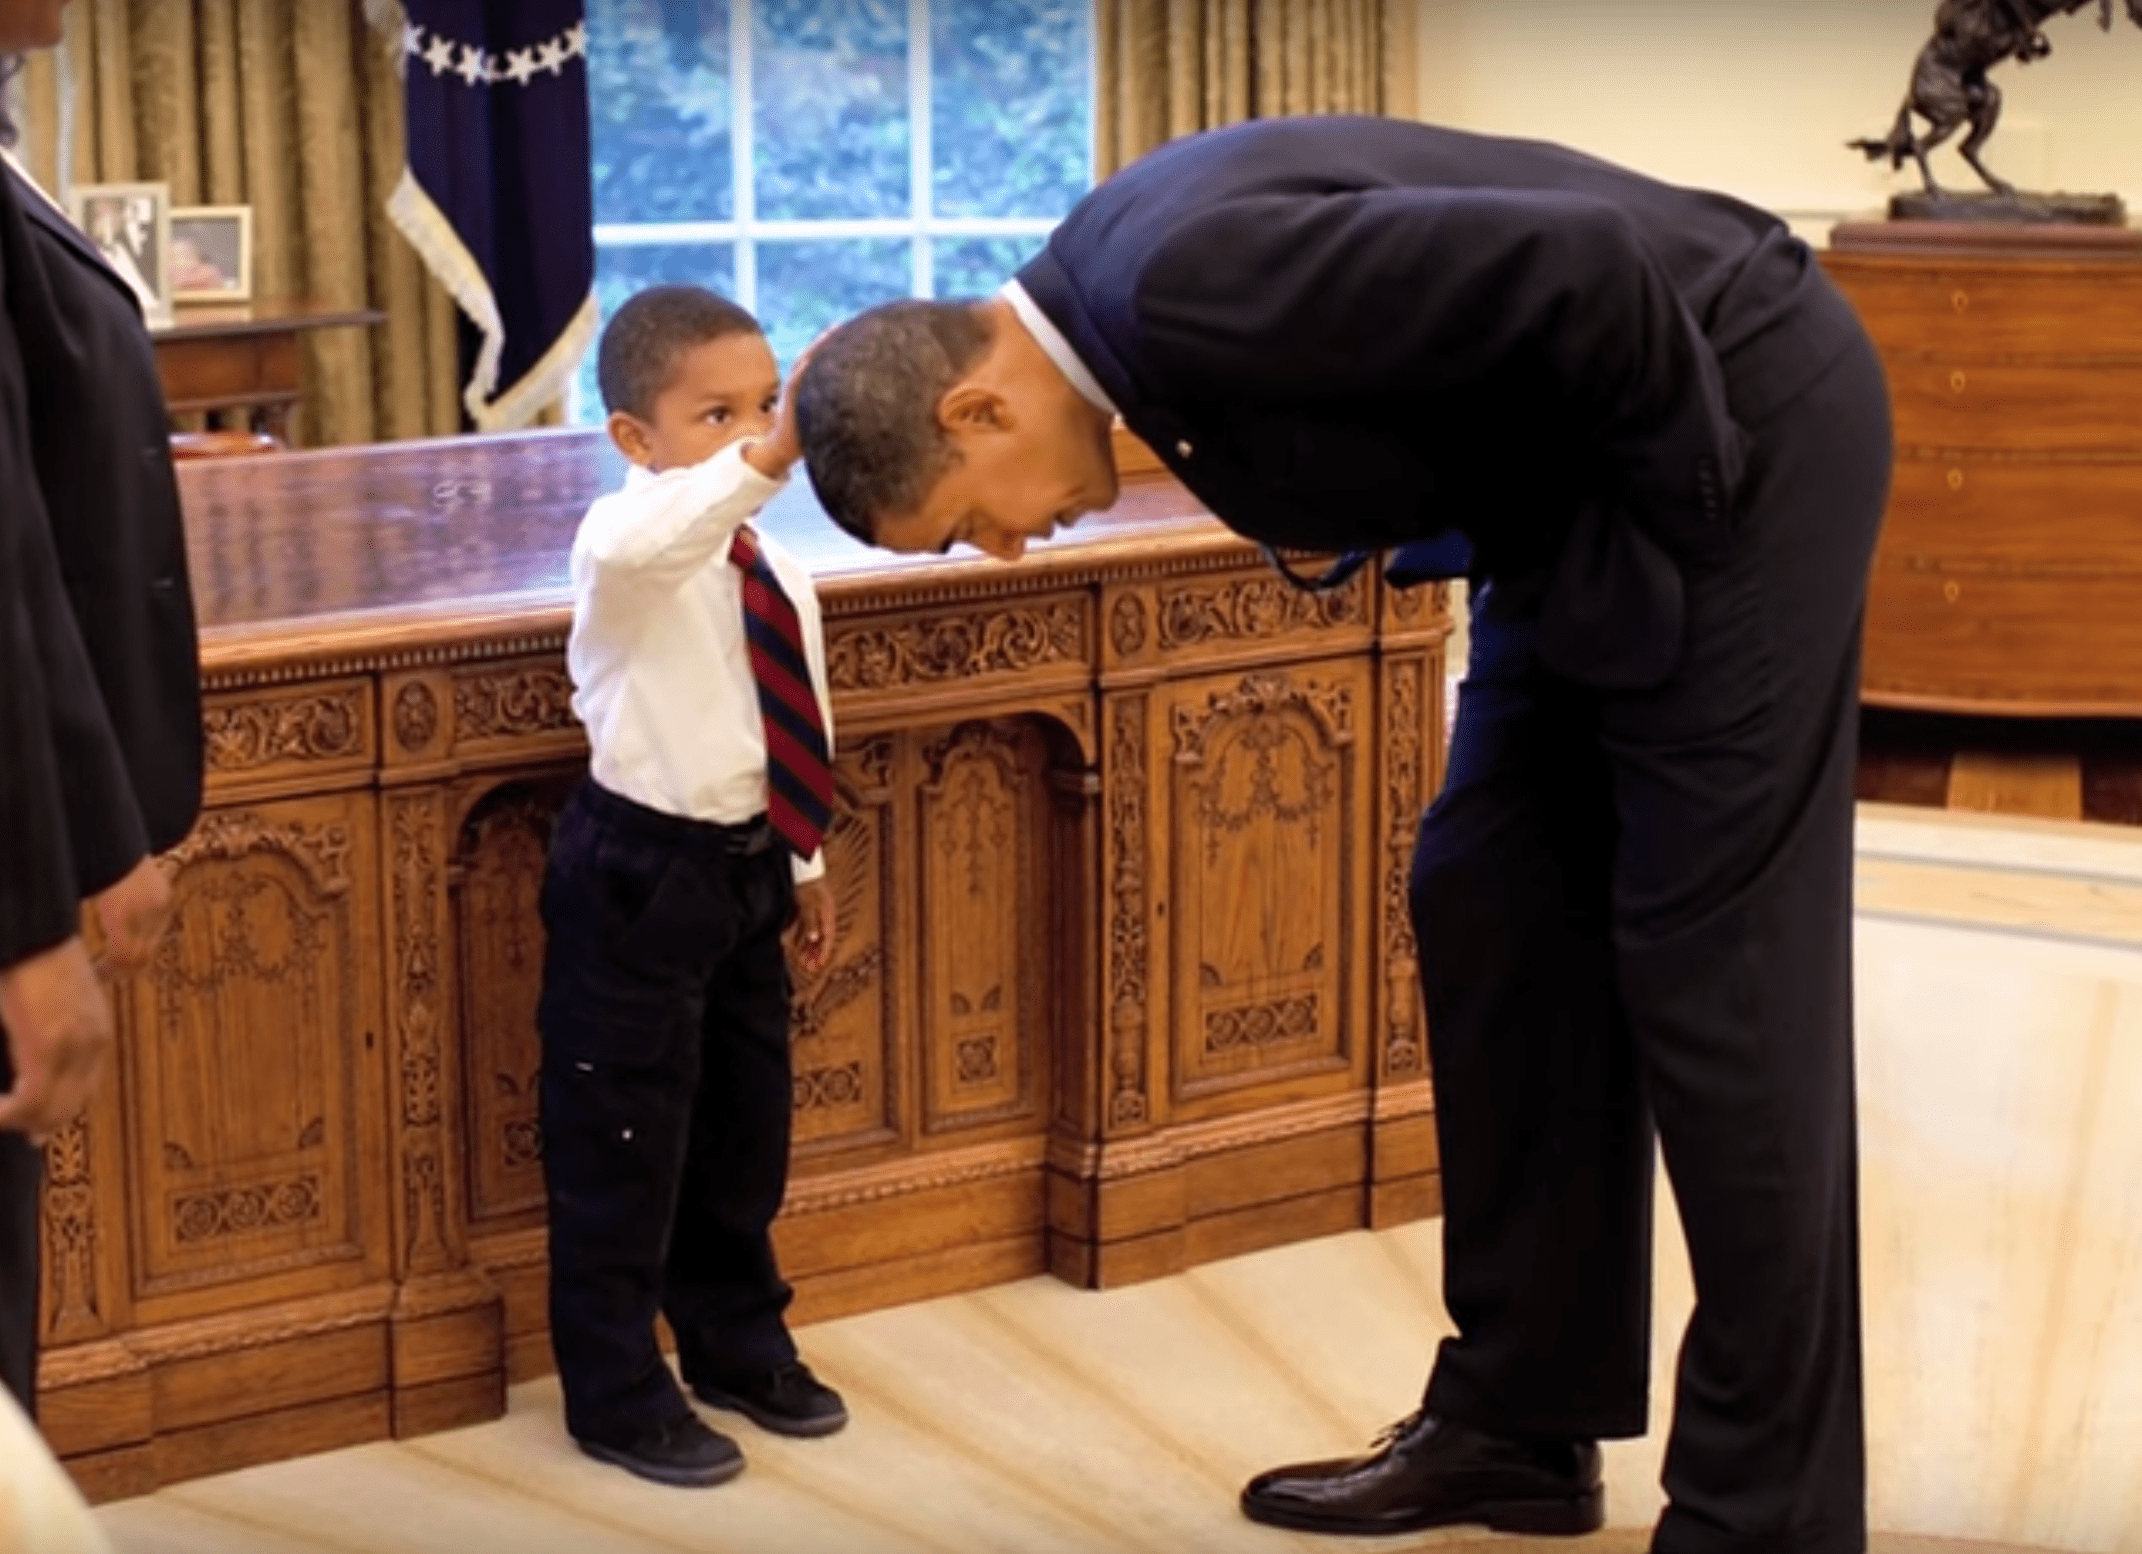 Obama bends down to let a young boy touch his head. | Source: YouTube/washingtonpost